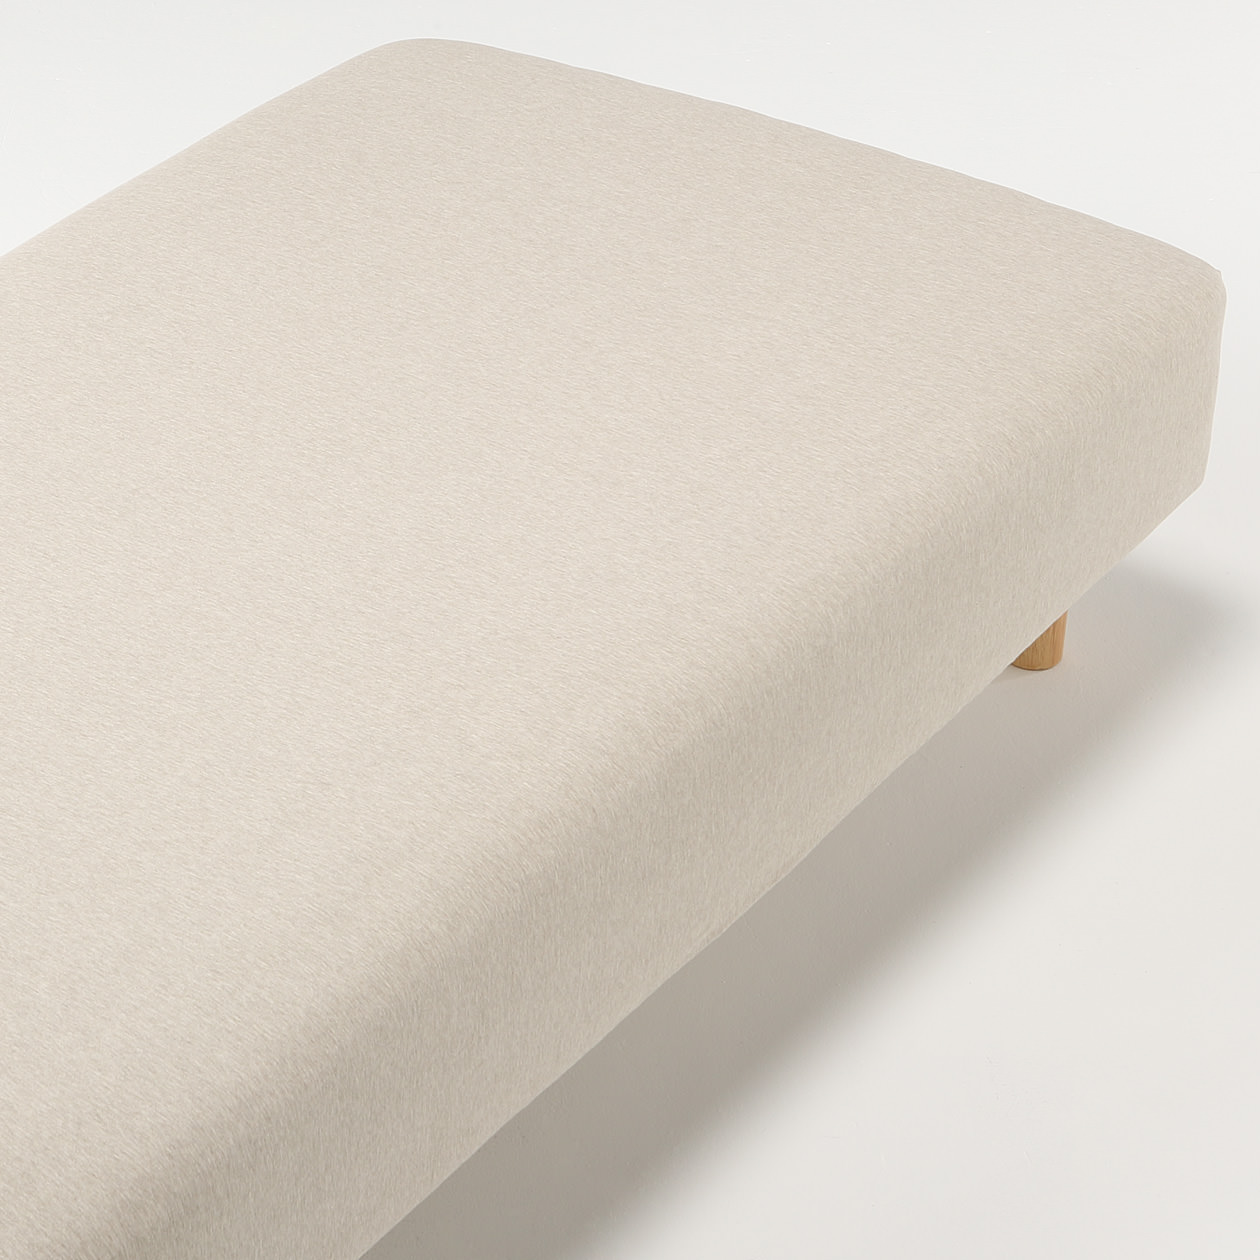 Muji Bed Sheets Organic Cotton Jersey Queen Fitted Sheet 無印良品 Muji